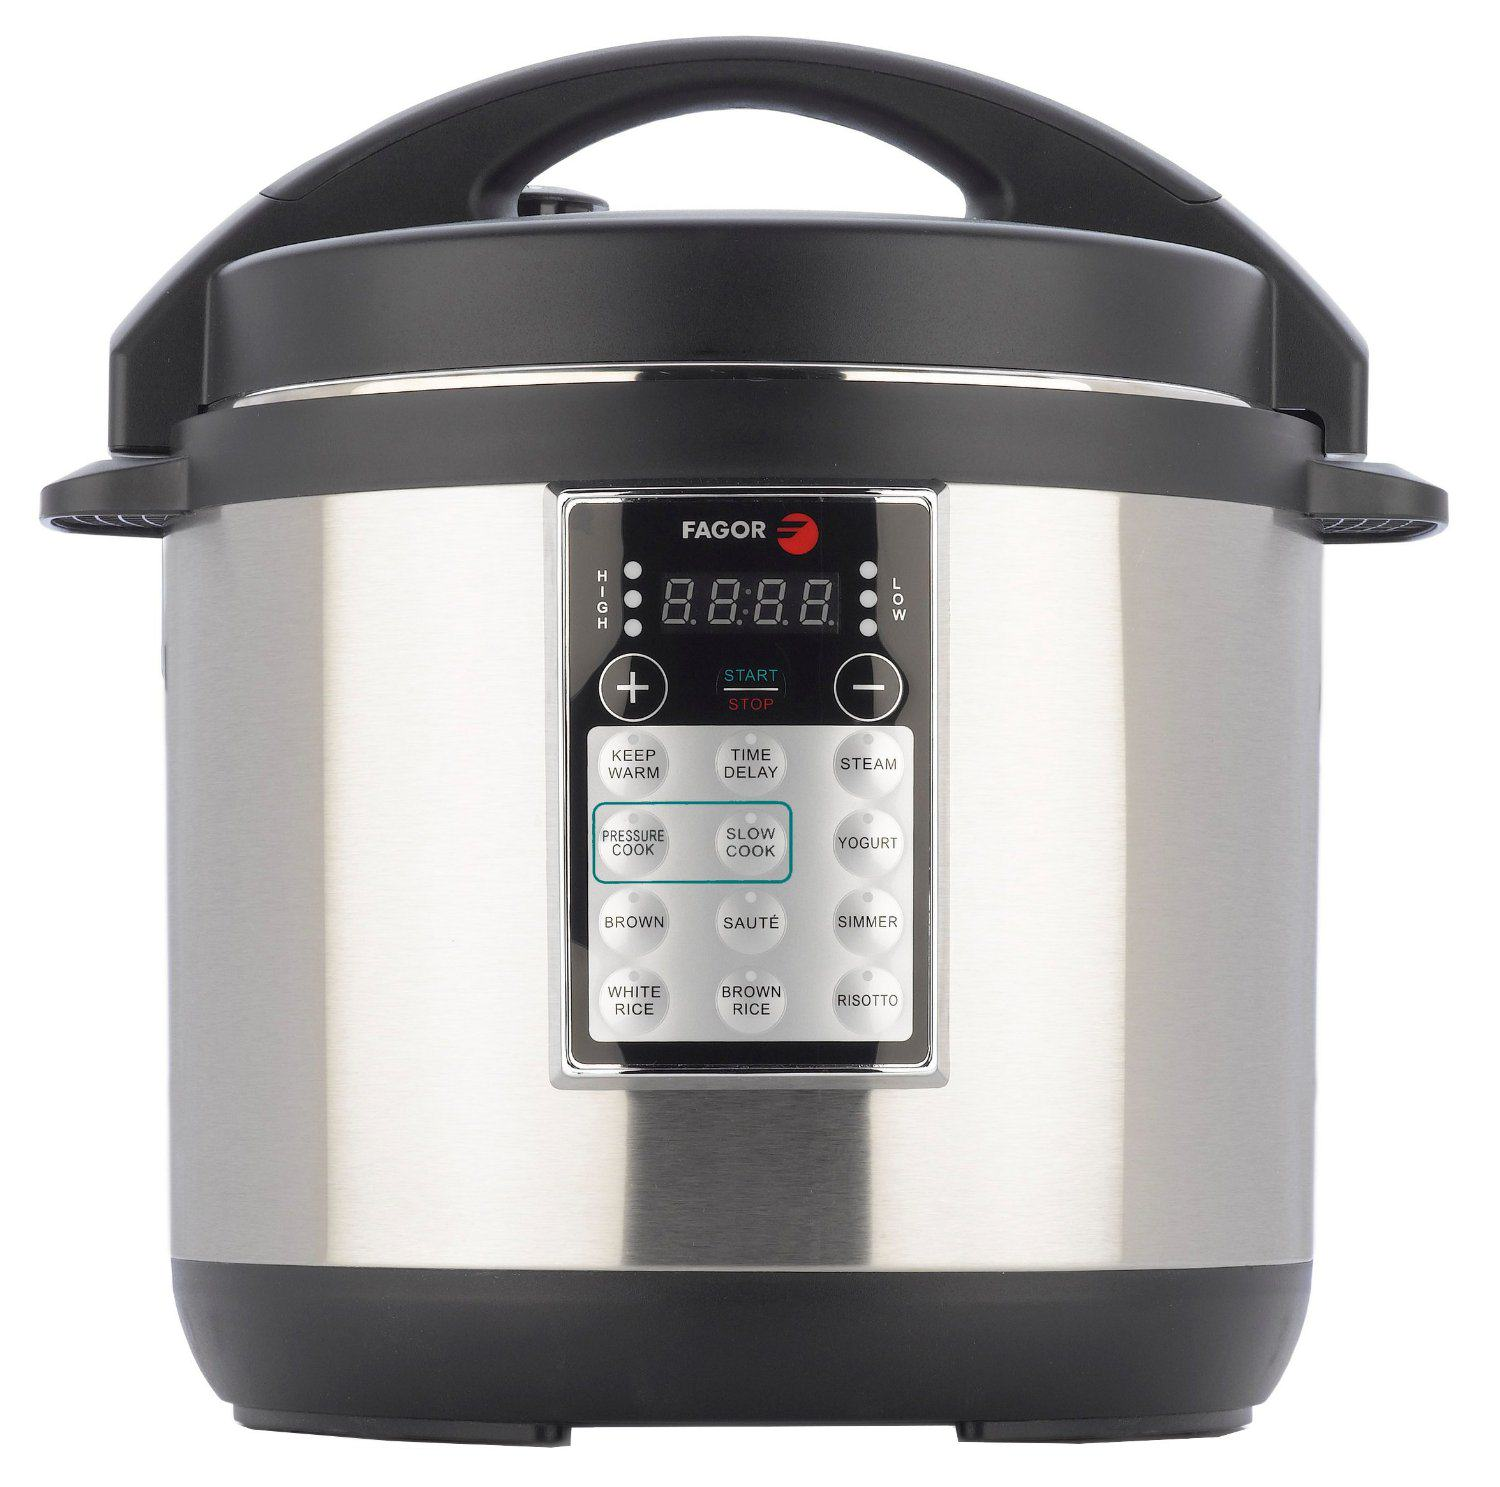 Fagor LUX Electric Pressure Cooker Manual, Error Codes & Info ⋆ hip